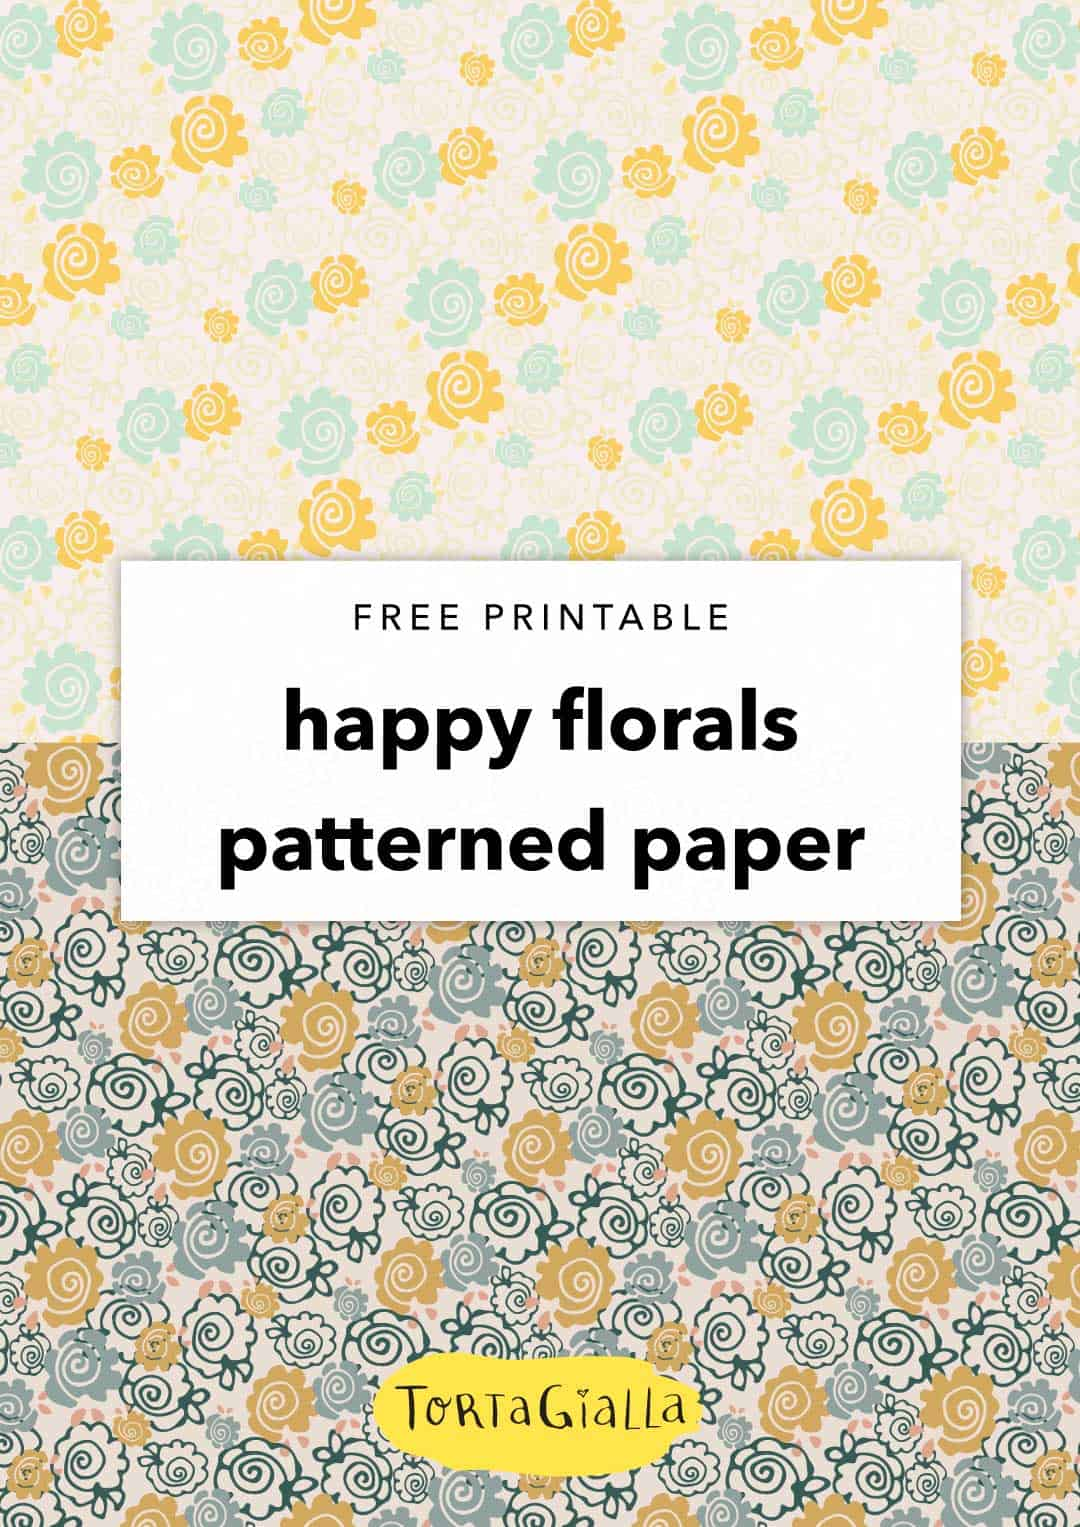 graphic relating to Printable Decorative Paper called Absolutely free Printable Attractive Paper - Content Florals tortagialla